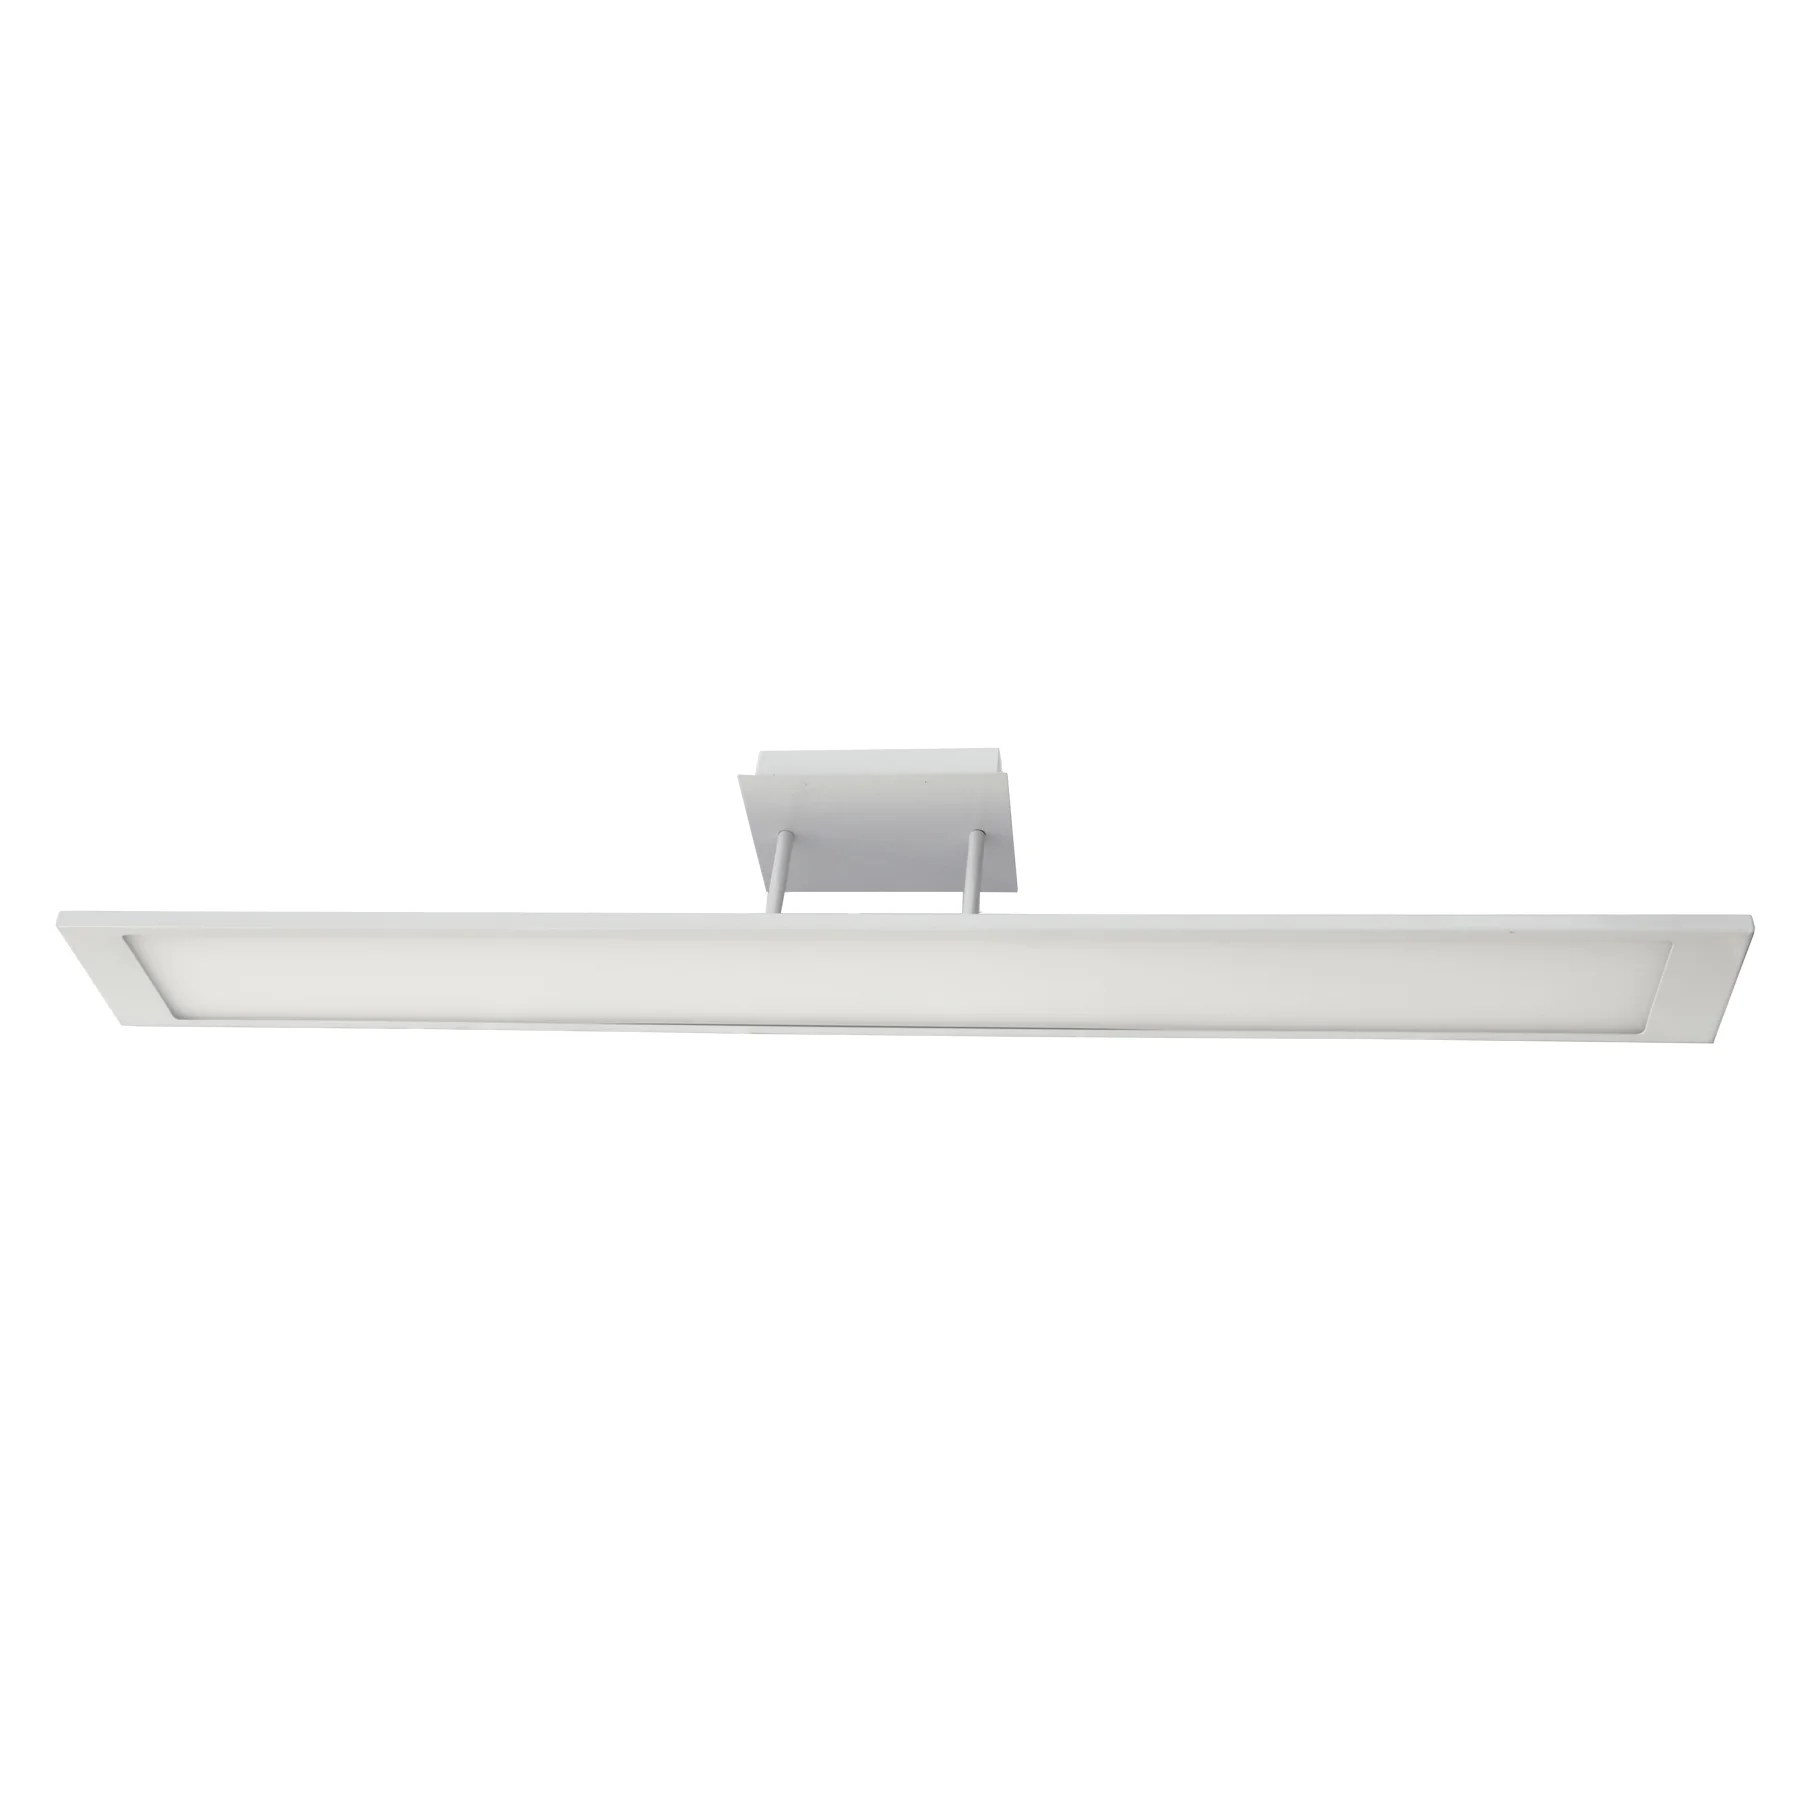 40 Watt Led Details About Homeselects 6649 40 Watt Led Integrated Linear Flat Panel Semi Flush Light